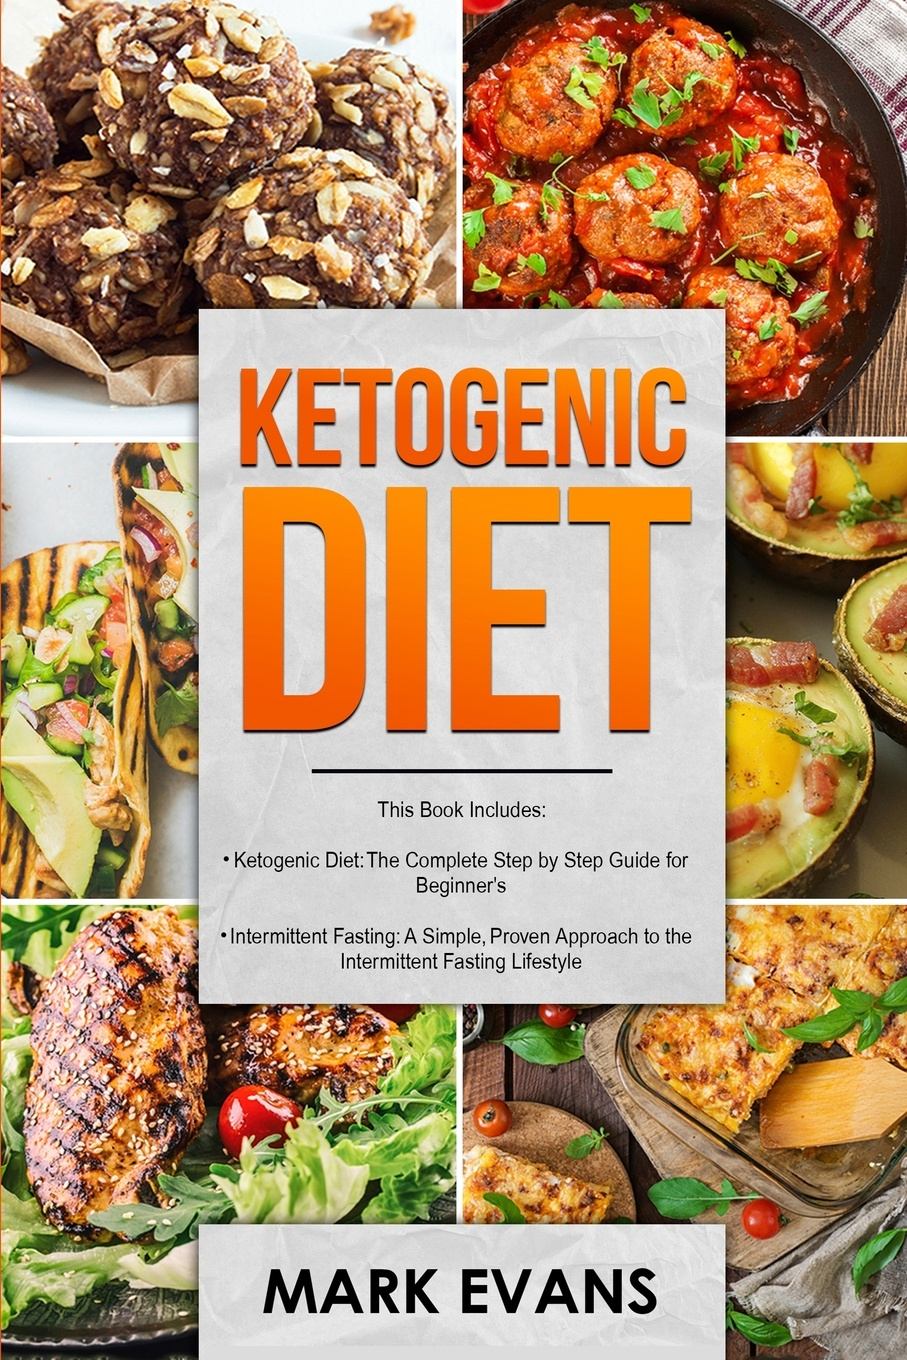 Mark Evans Ketogenic Diet. & Intermittent Fasting - 2 Manuscripts Diet: The Complete Step by Guide for Beginners Fasting: A ... Approach to (Volume 1)